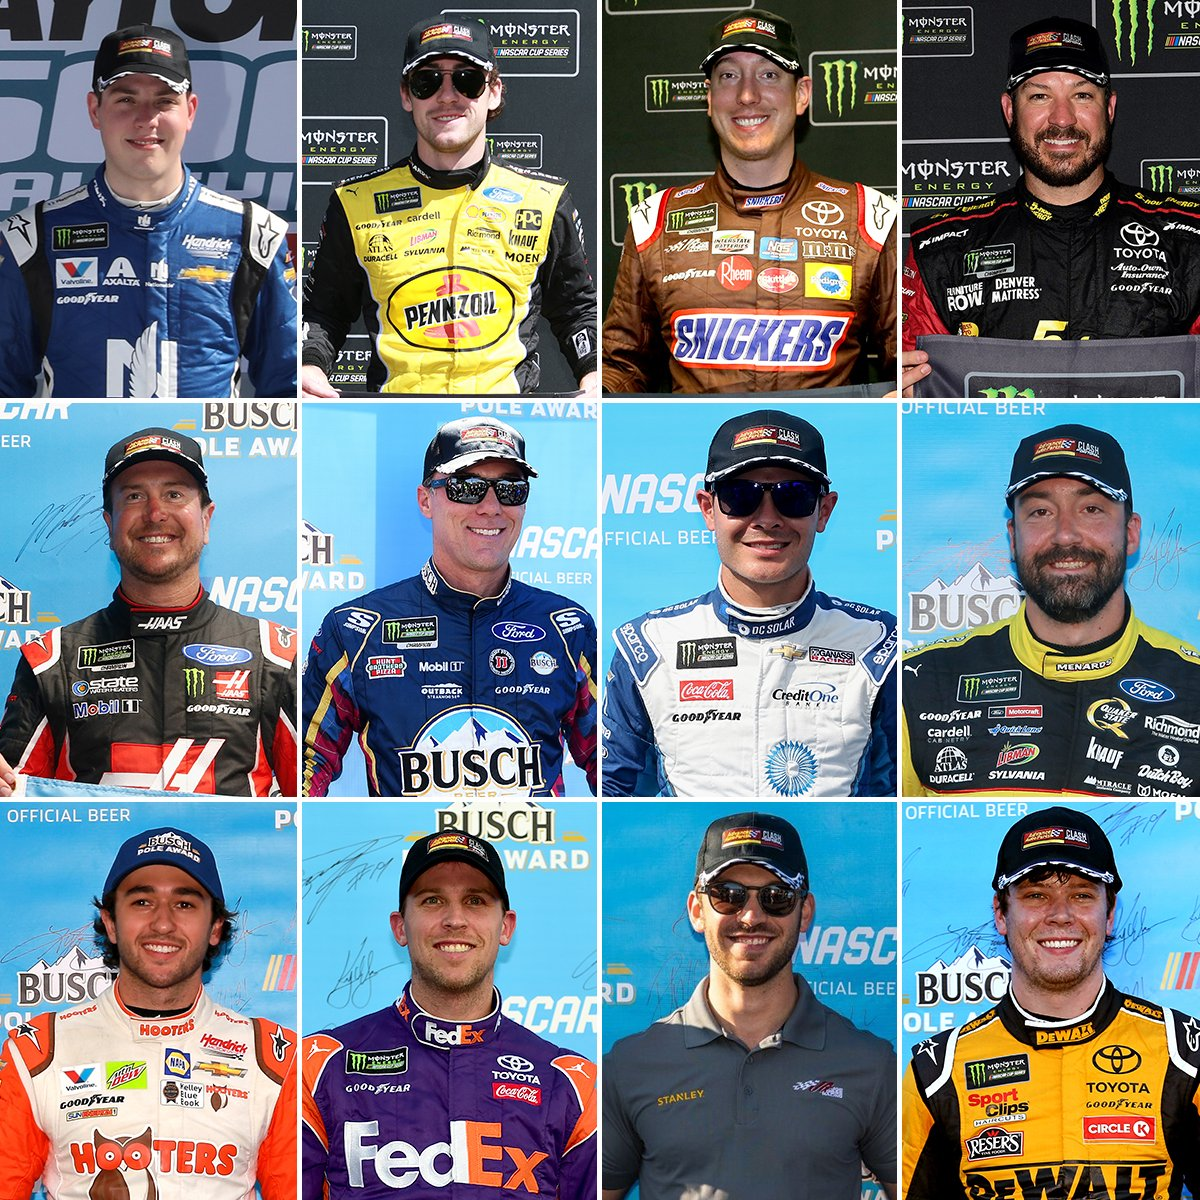 So far, 12 drivers have officially qualified for the 2019 #AdvanceAutoClash with pole wins this season. #AdvanceOnTrack